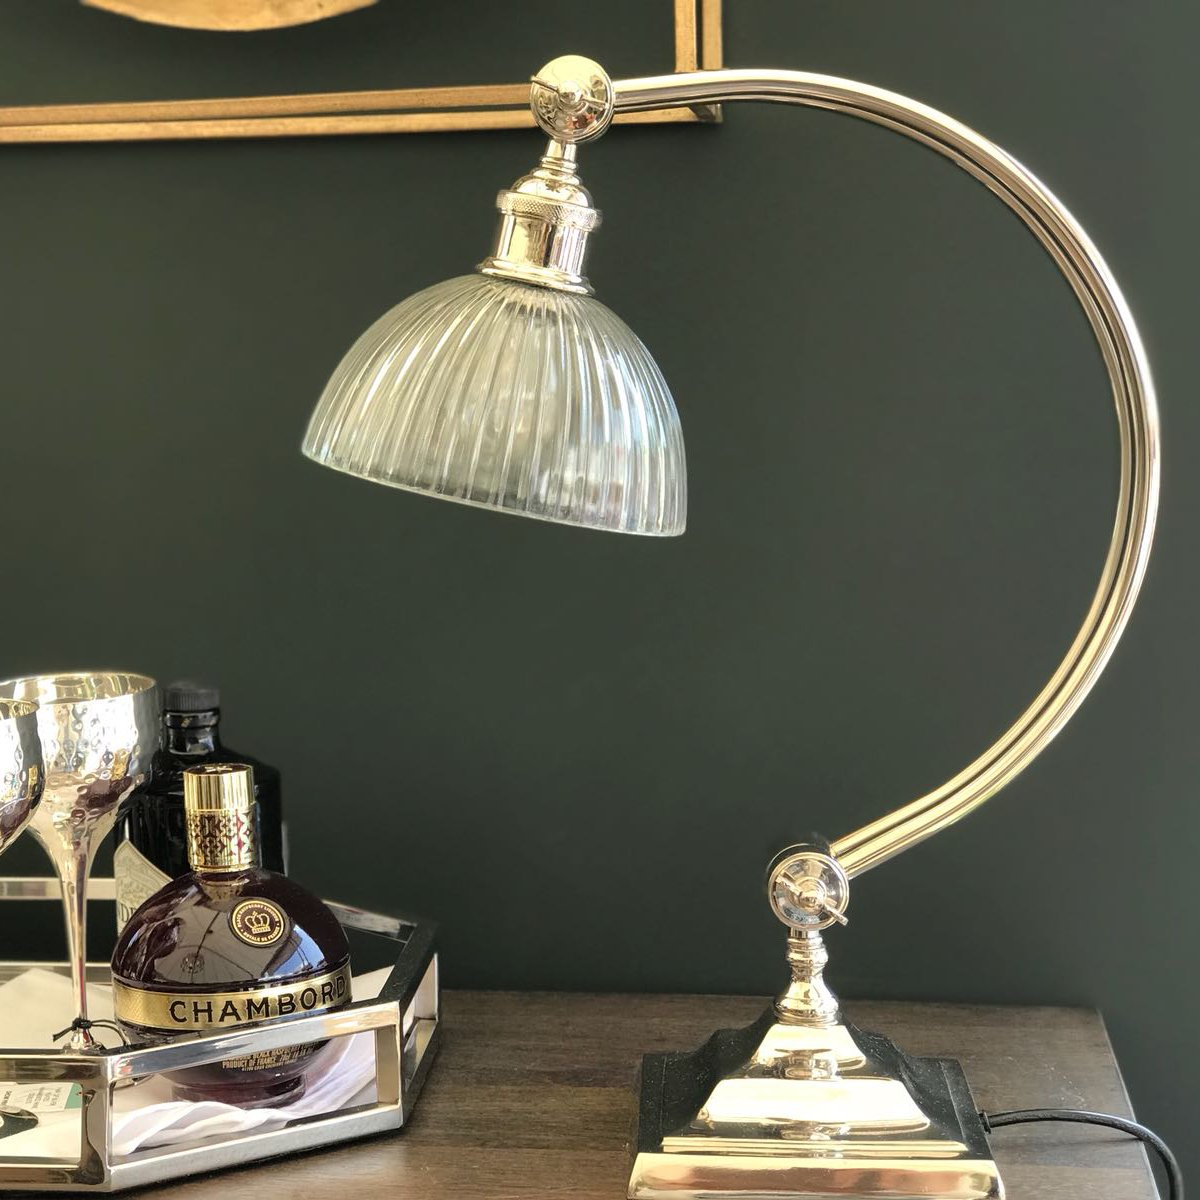 Illuminate Your Home with Our New Table Light...